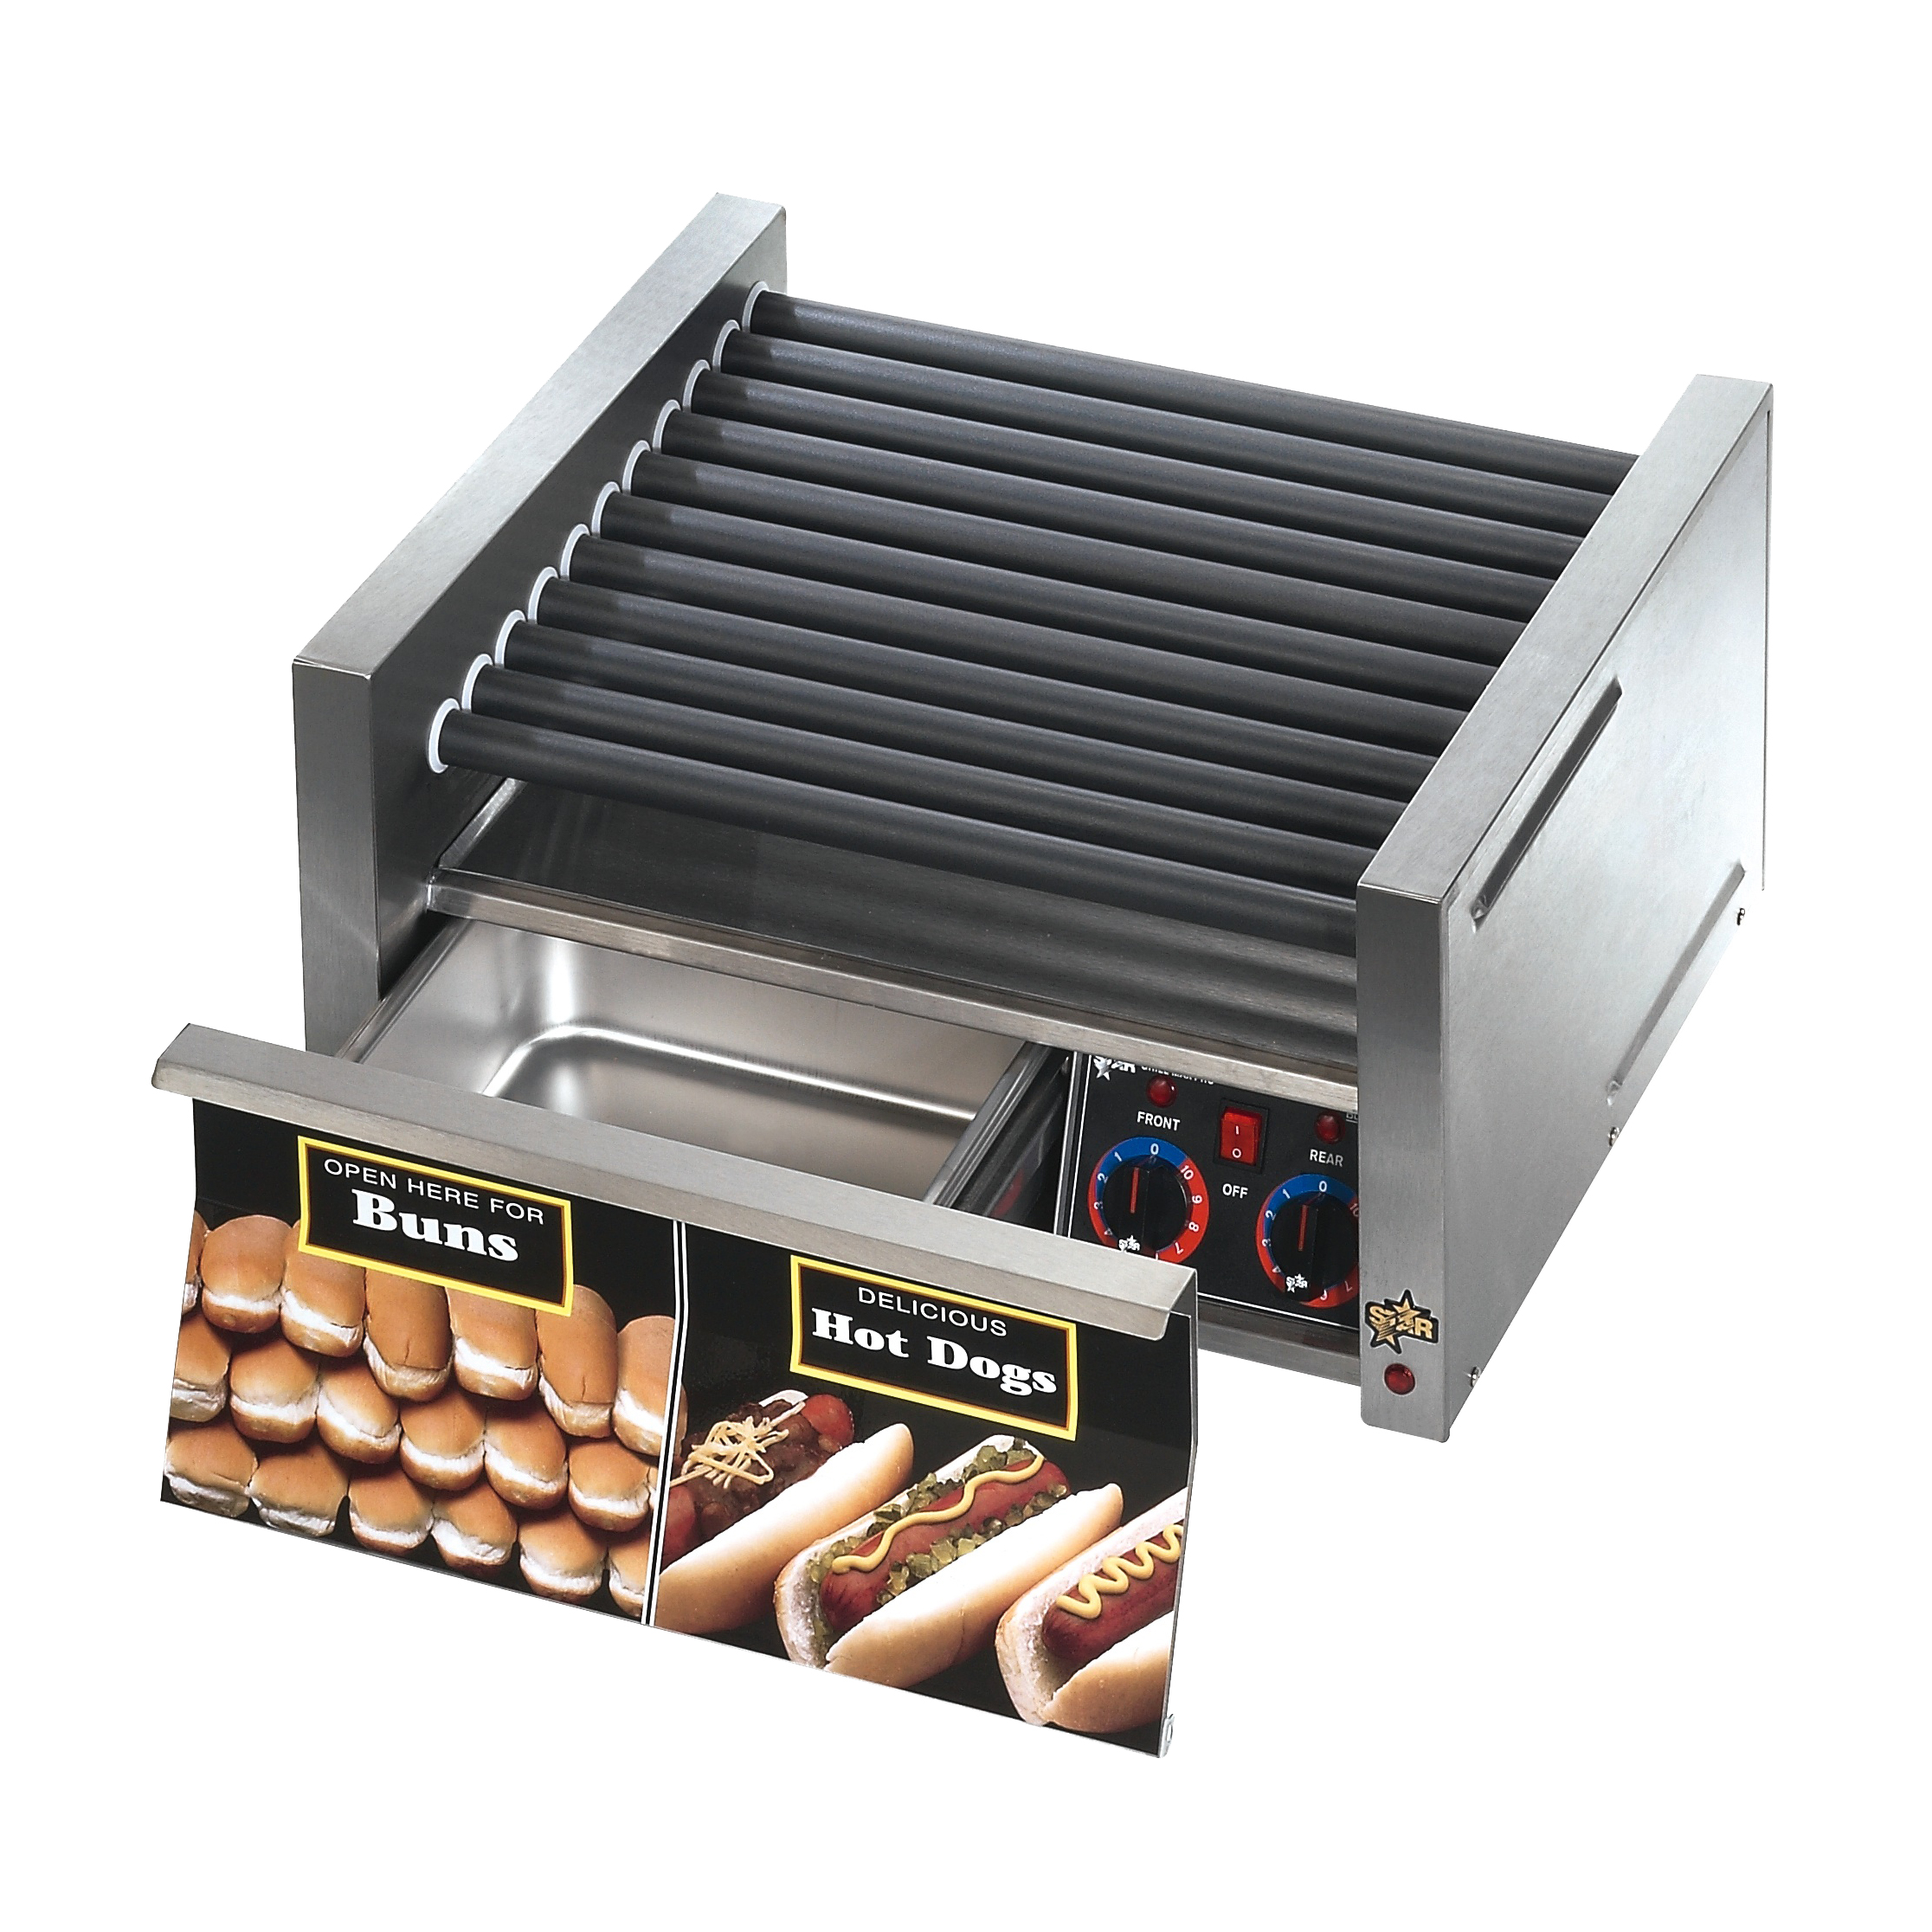 Star 50CBD hot dog grill